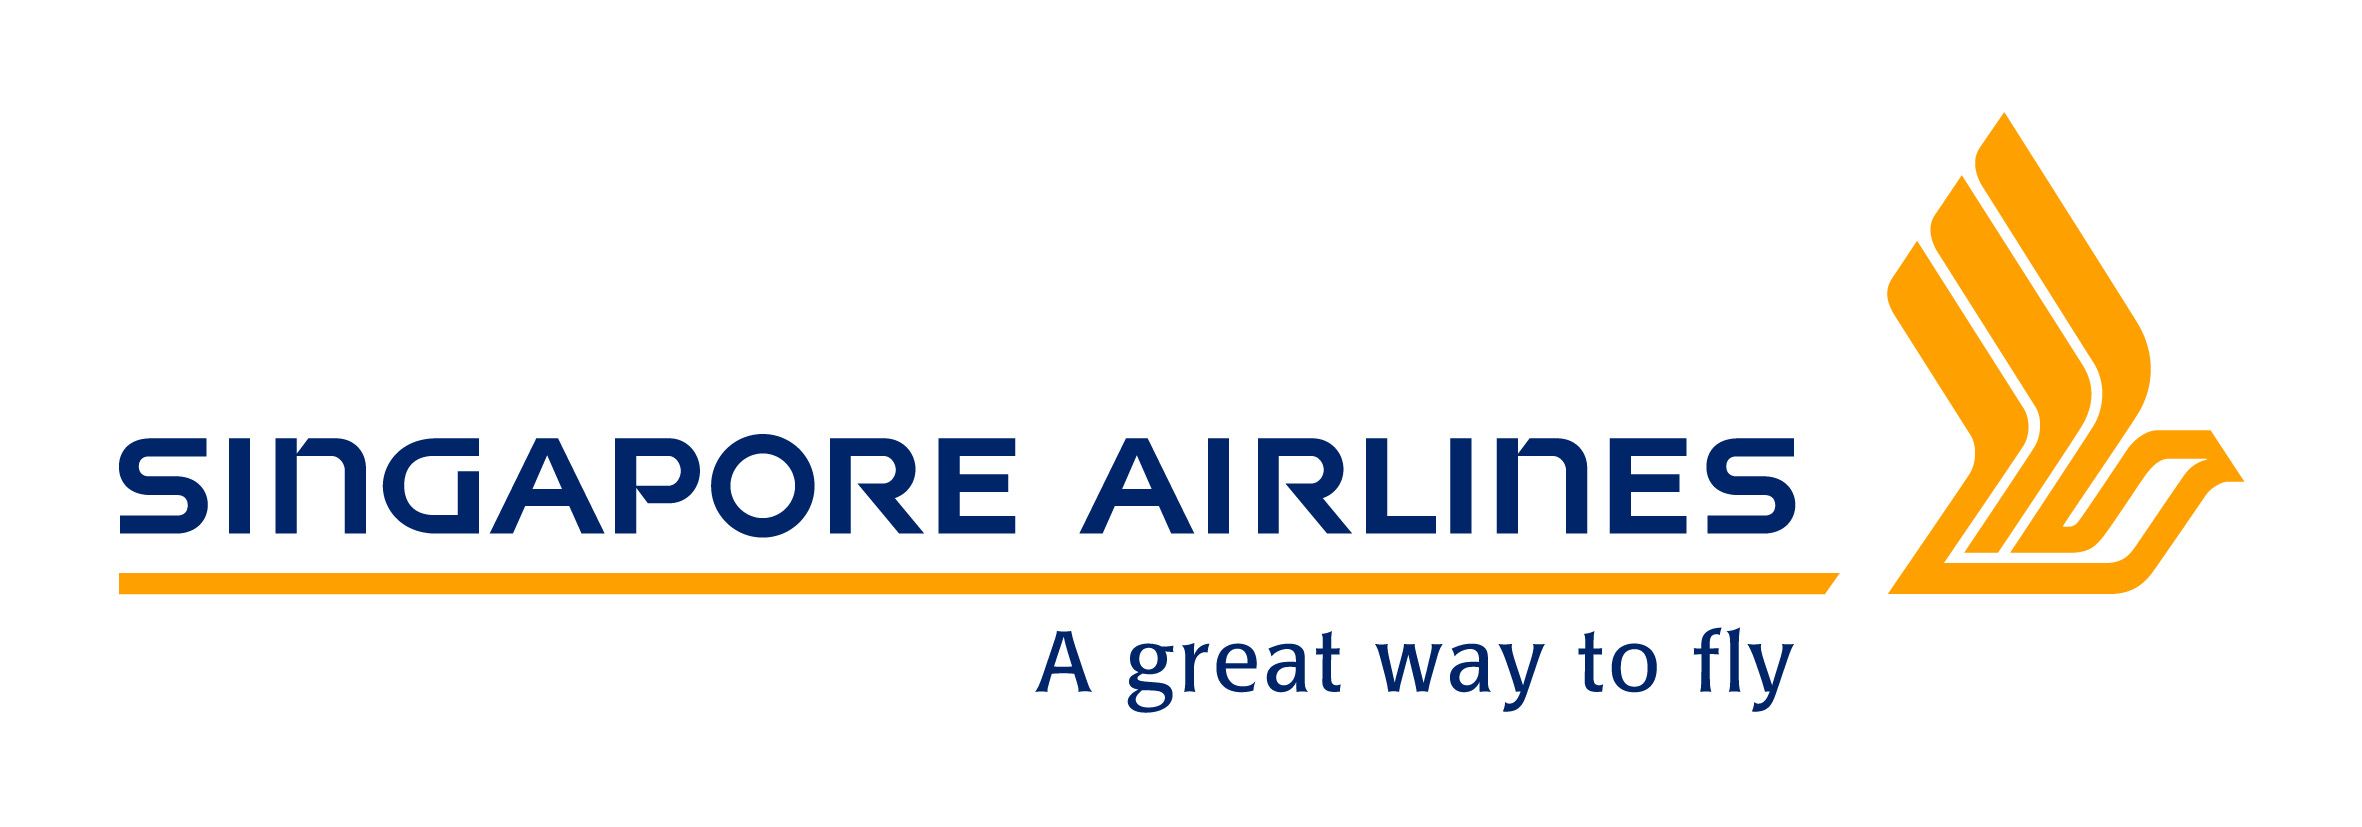 Airline Logos Download Download Singapore Airlines